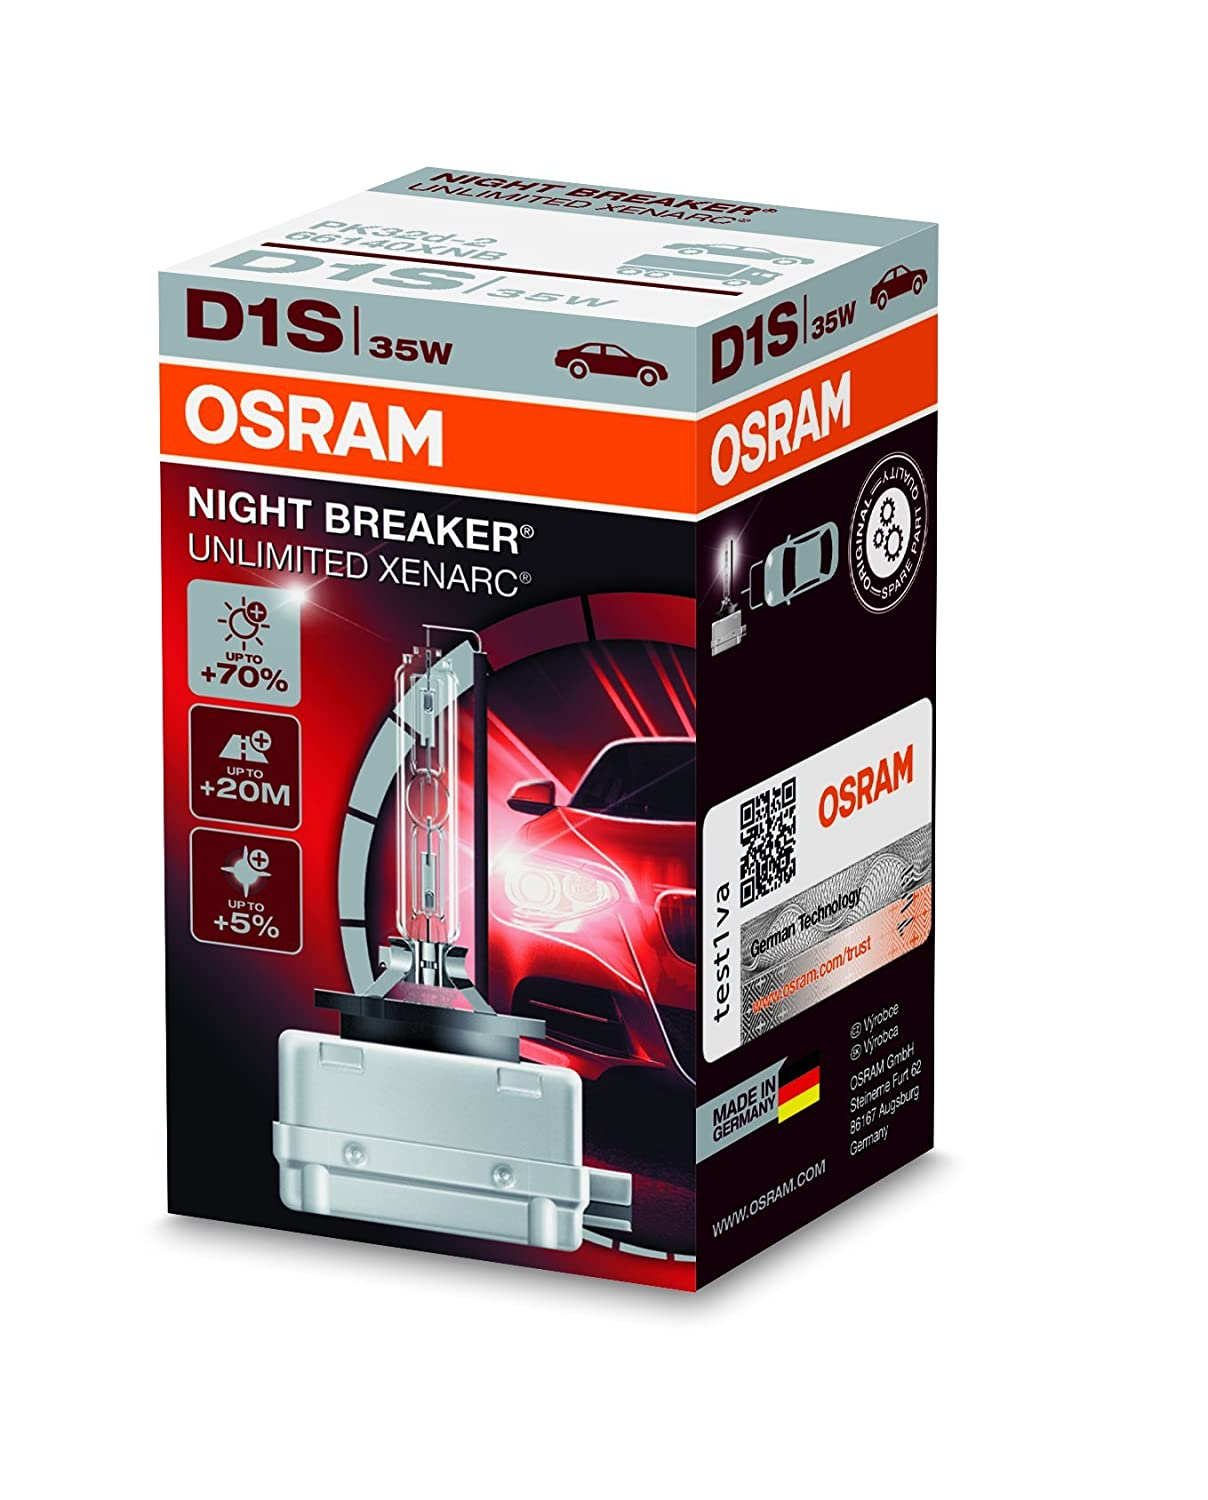 OSRAM XENARC ORIGINAL D1S HID Xenon discharge bulb, discharge lamp, OEM quality OEM, 66140, folding carton box (1 unit)